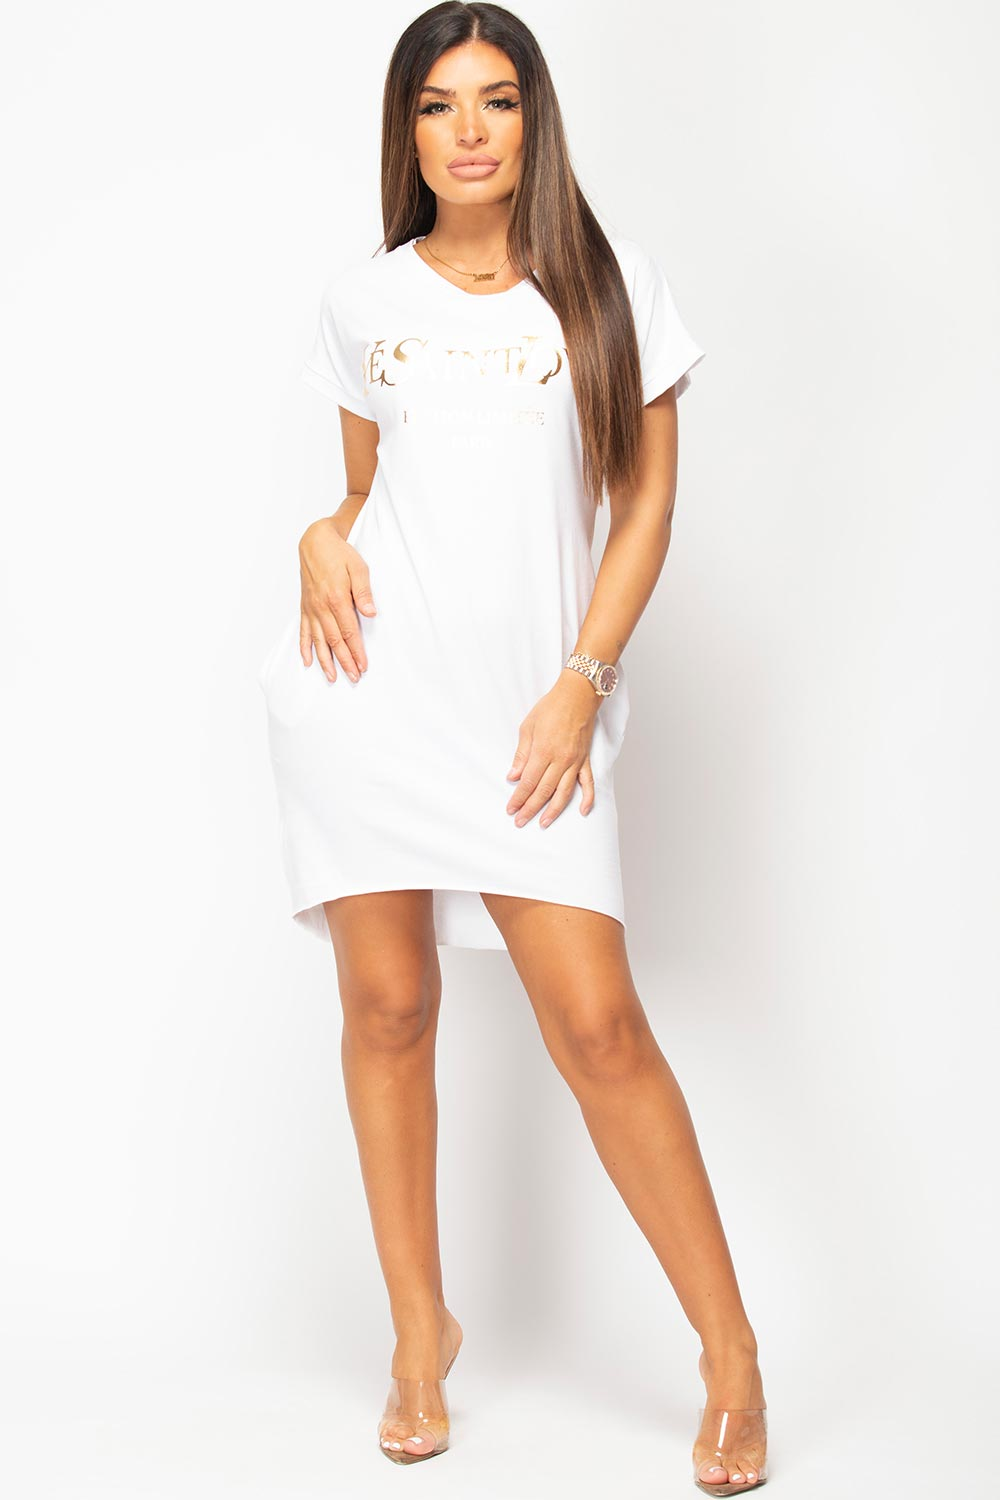 white shirt dress with ye saint love slogan